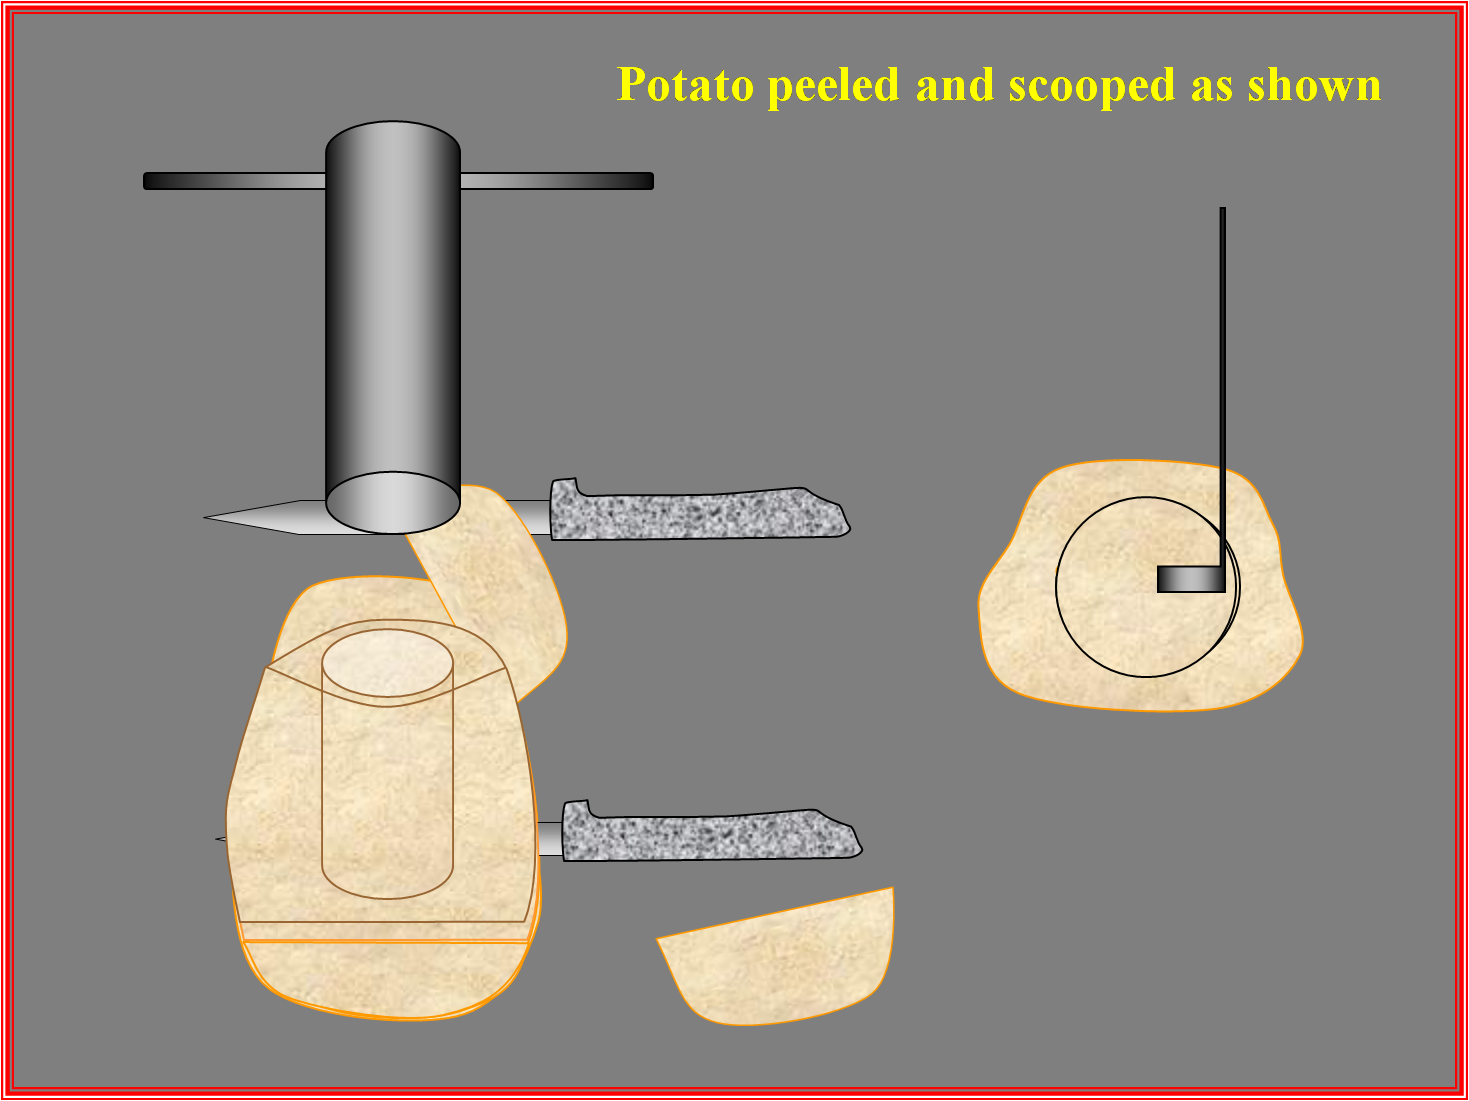 osmosis and potato tuber When carrying out the experiment i used a range of 0, 02, 04, 06, 08 and 1 molar solution to see the effect of osmosis in the potato pieces.